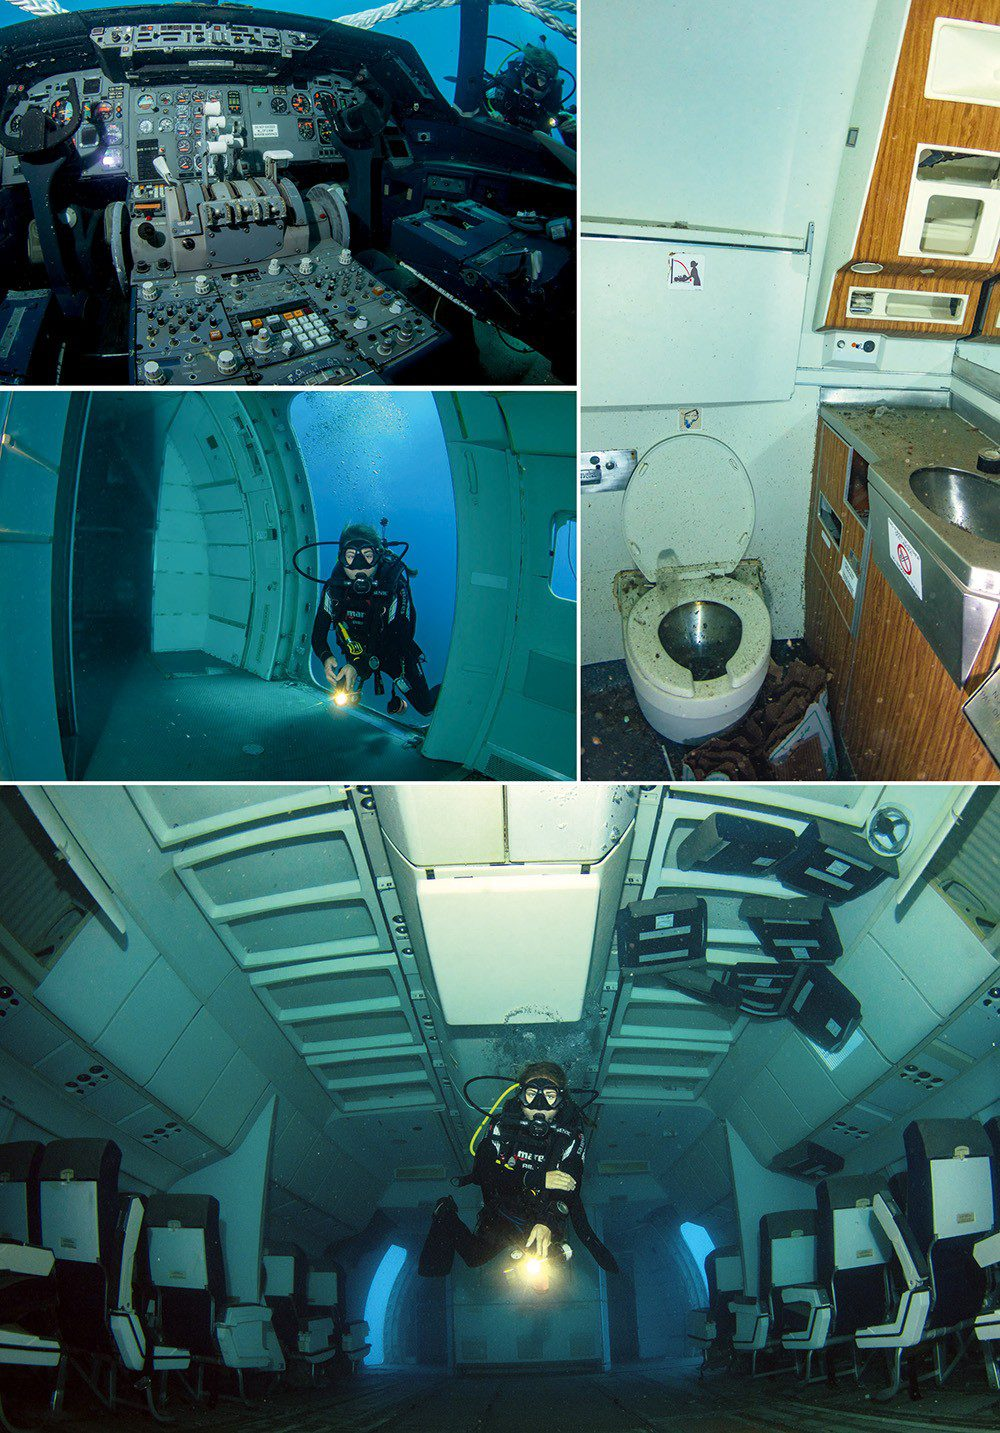 Clockwise, from top left: The cockpit with all controls intact; one of the lavatories; inside the fuselage; boarding.